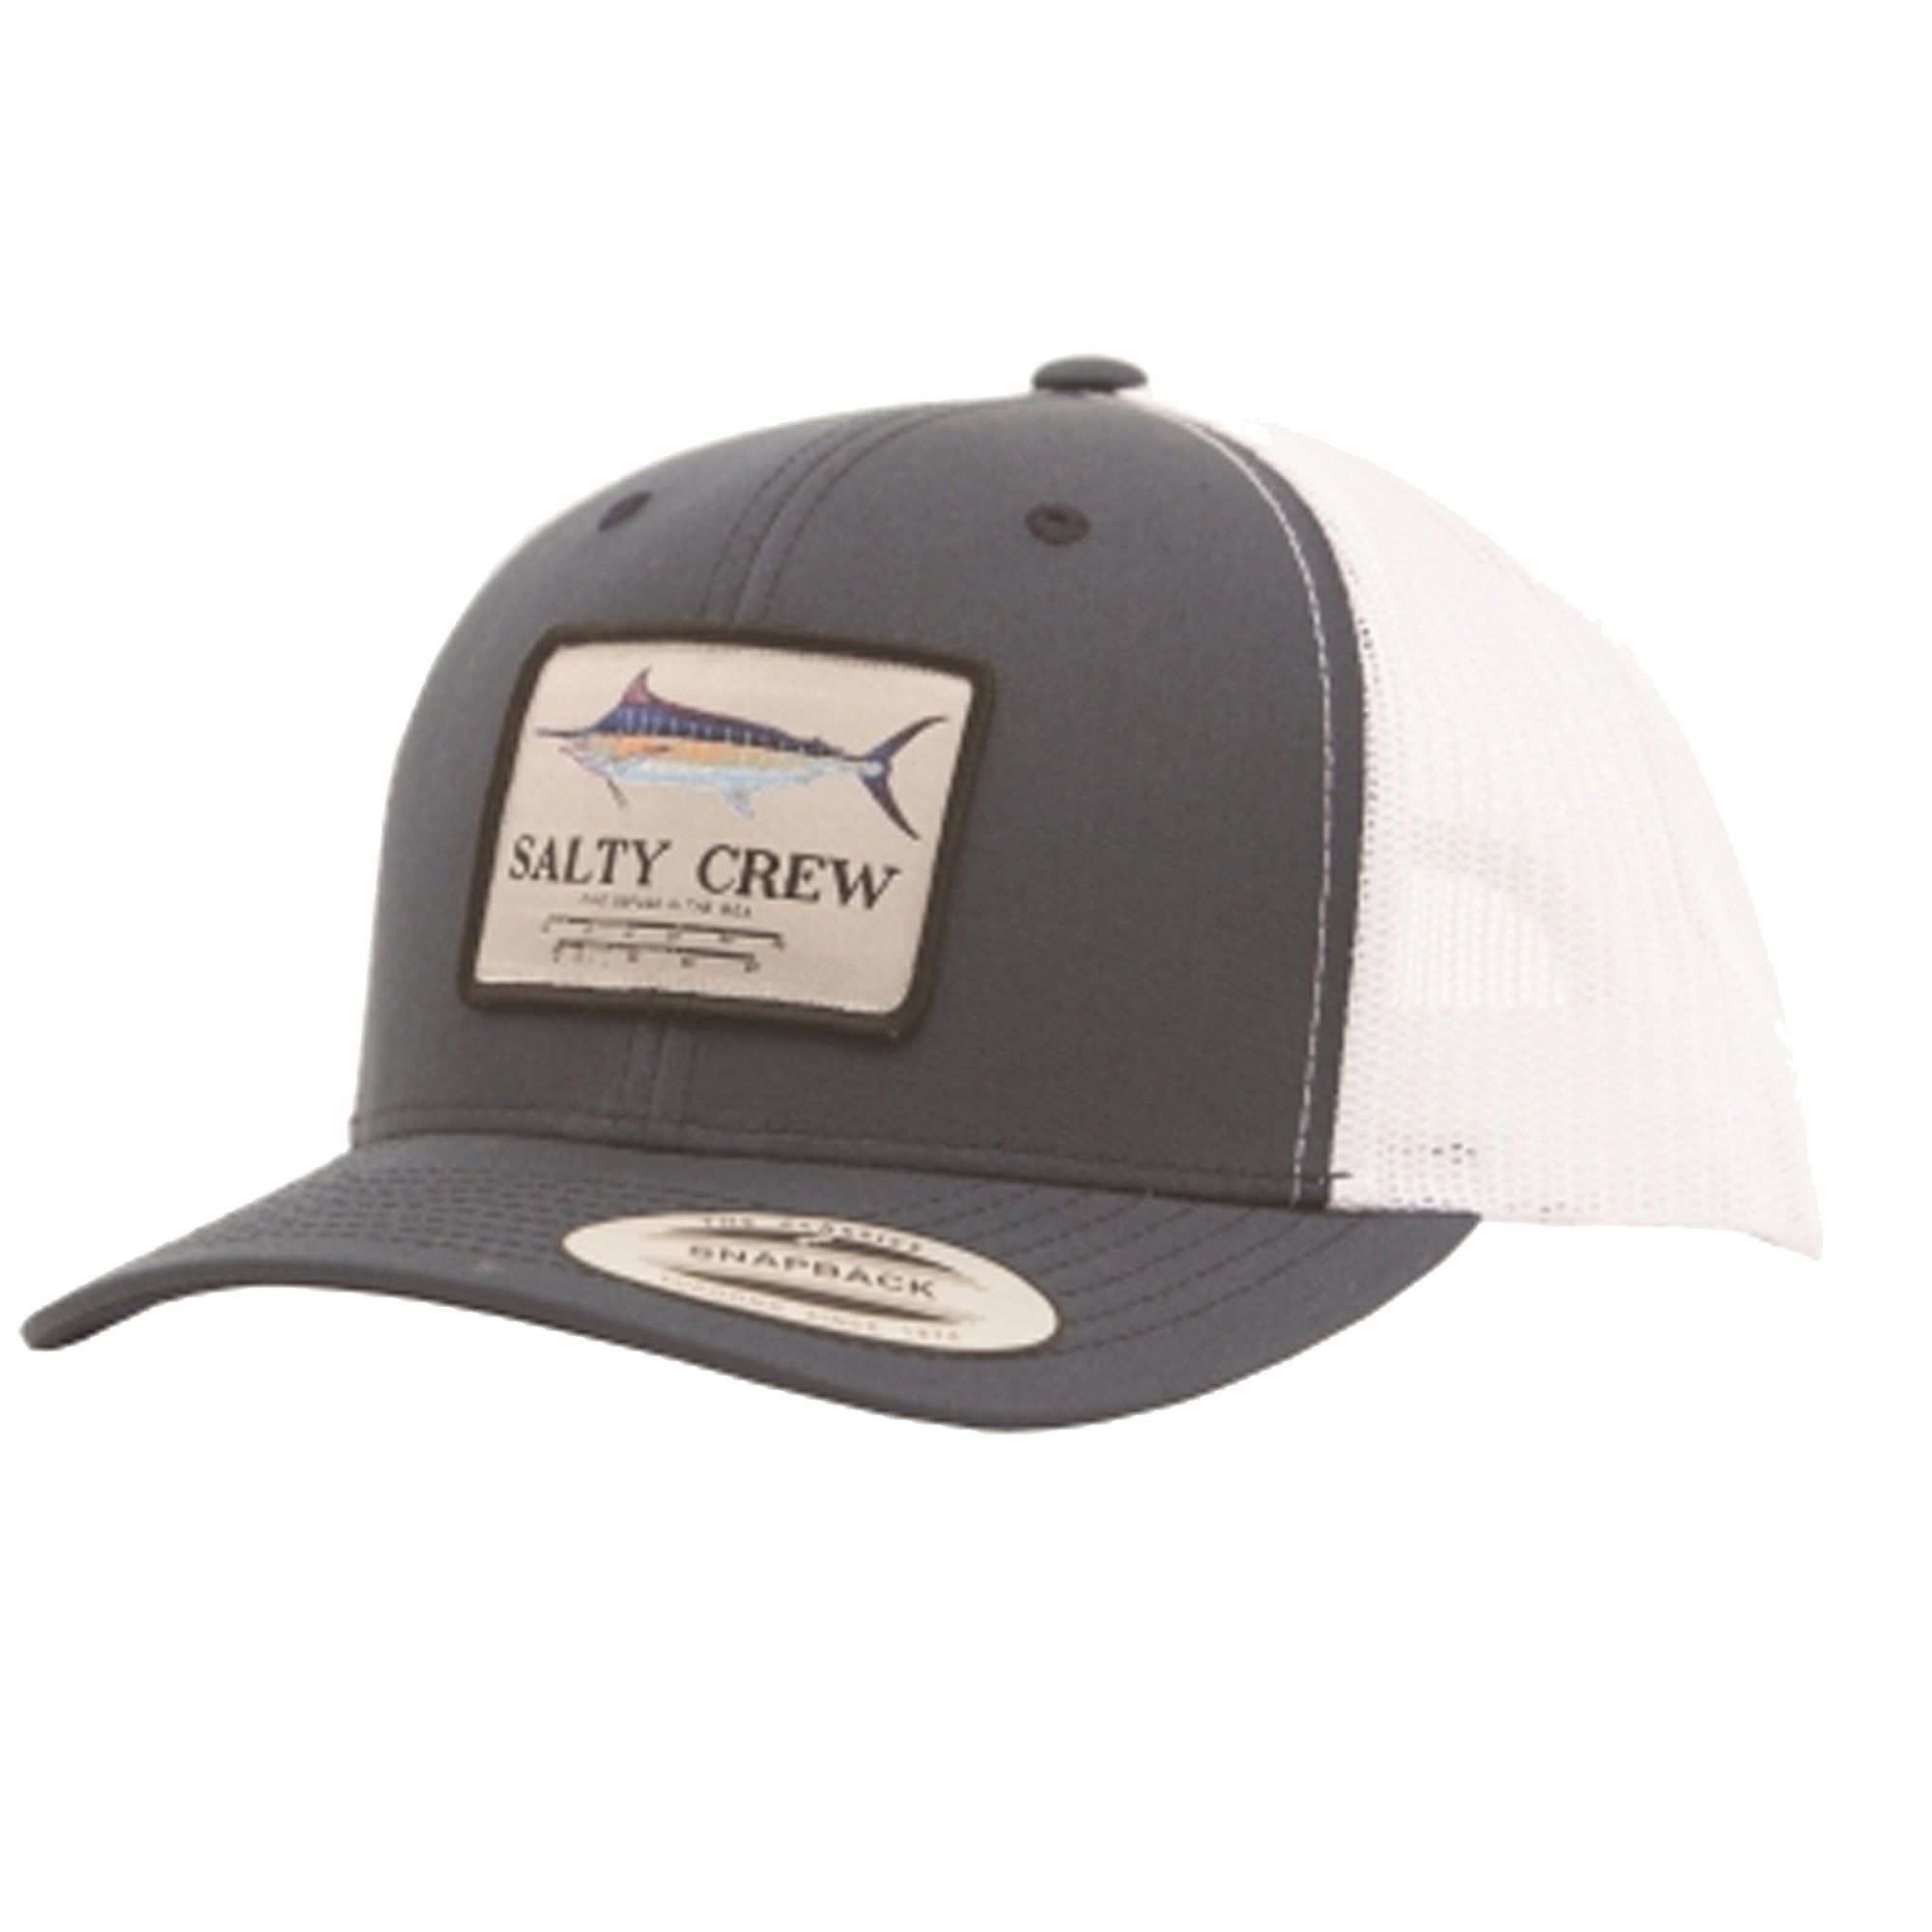 Salty Crew Men's Marlin Mount Retro Trucker Hat, Navy/White, One Size